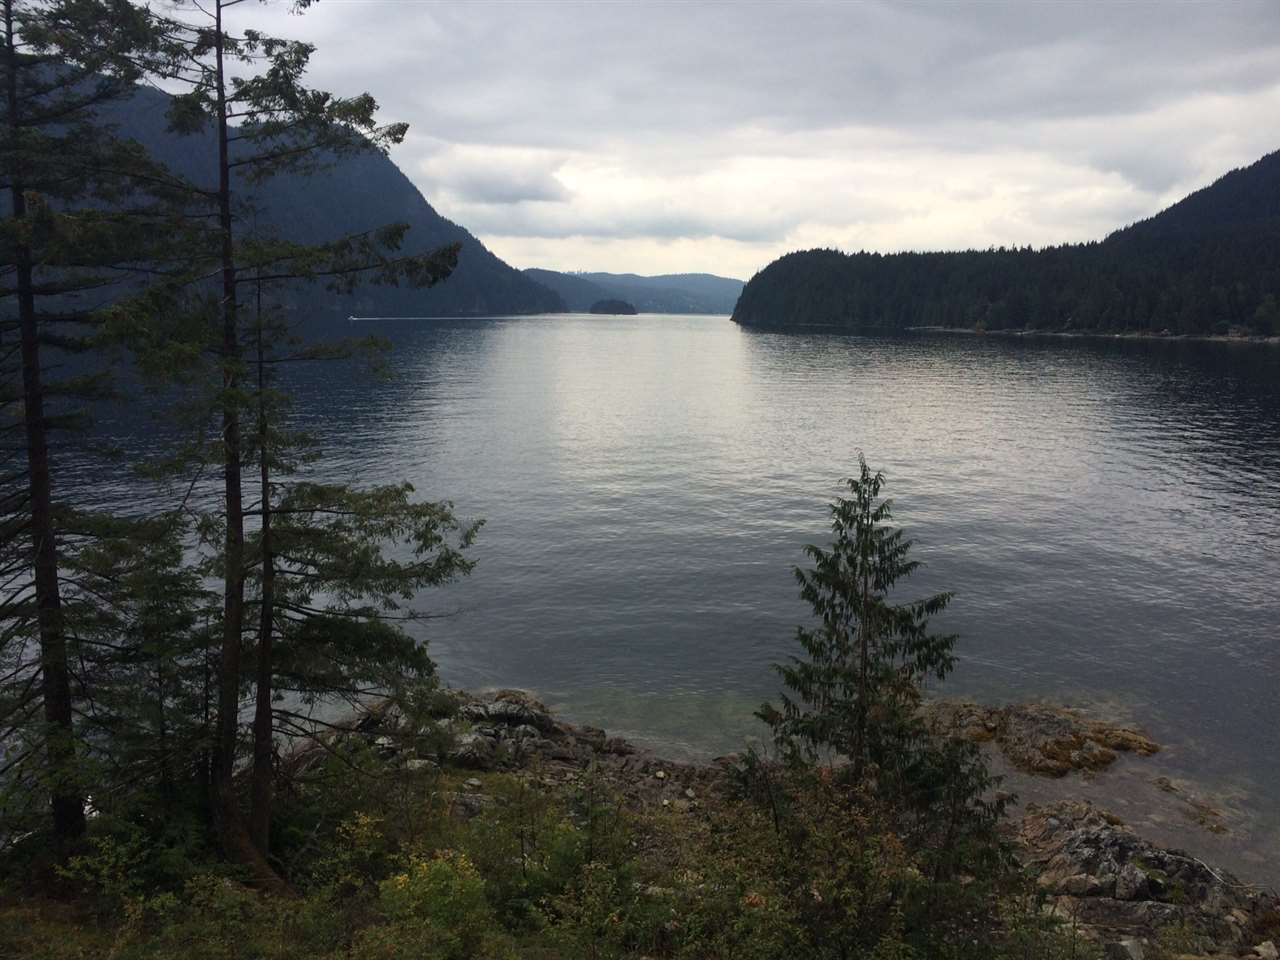 Rare freehold waterfront lot at Best Point in Indian Arm. Lot 13 is located on the west side of the arm in North Vancouver and is located in a rare Southern exposed position of the Northshore side of The Arm. It's one of a 14 lot development that borders BC Parks. Approximately 1/3 of an acre with 66' waterfront with a small protected bay with south facing views. Located 15 minutes close to Deep Cove via boat access only.